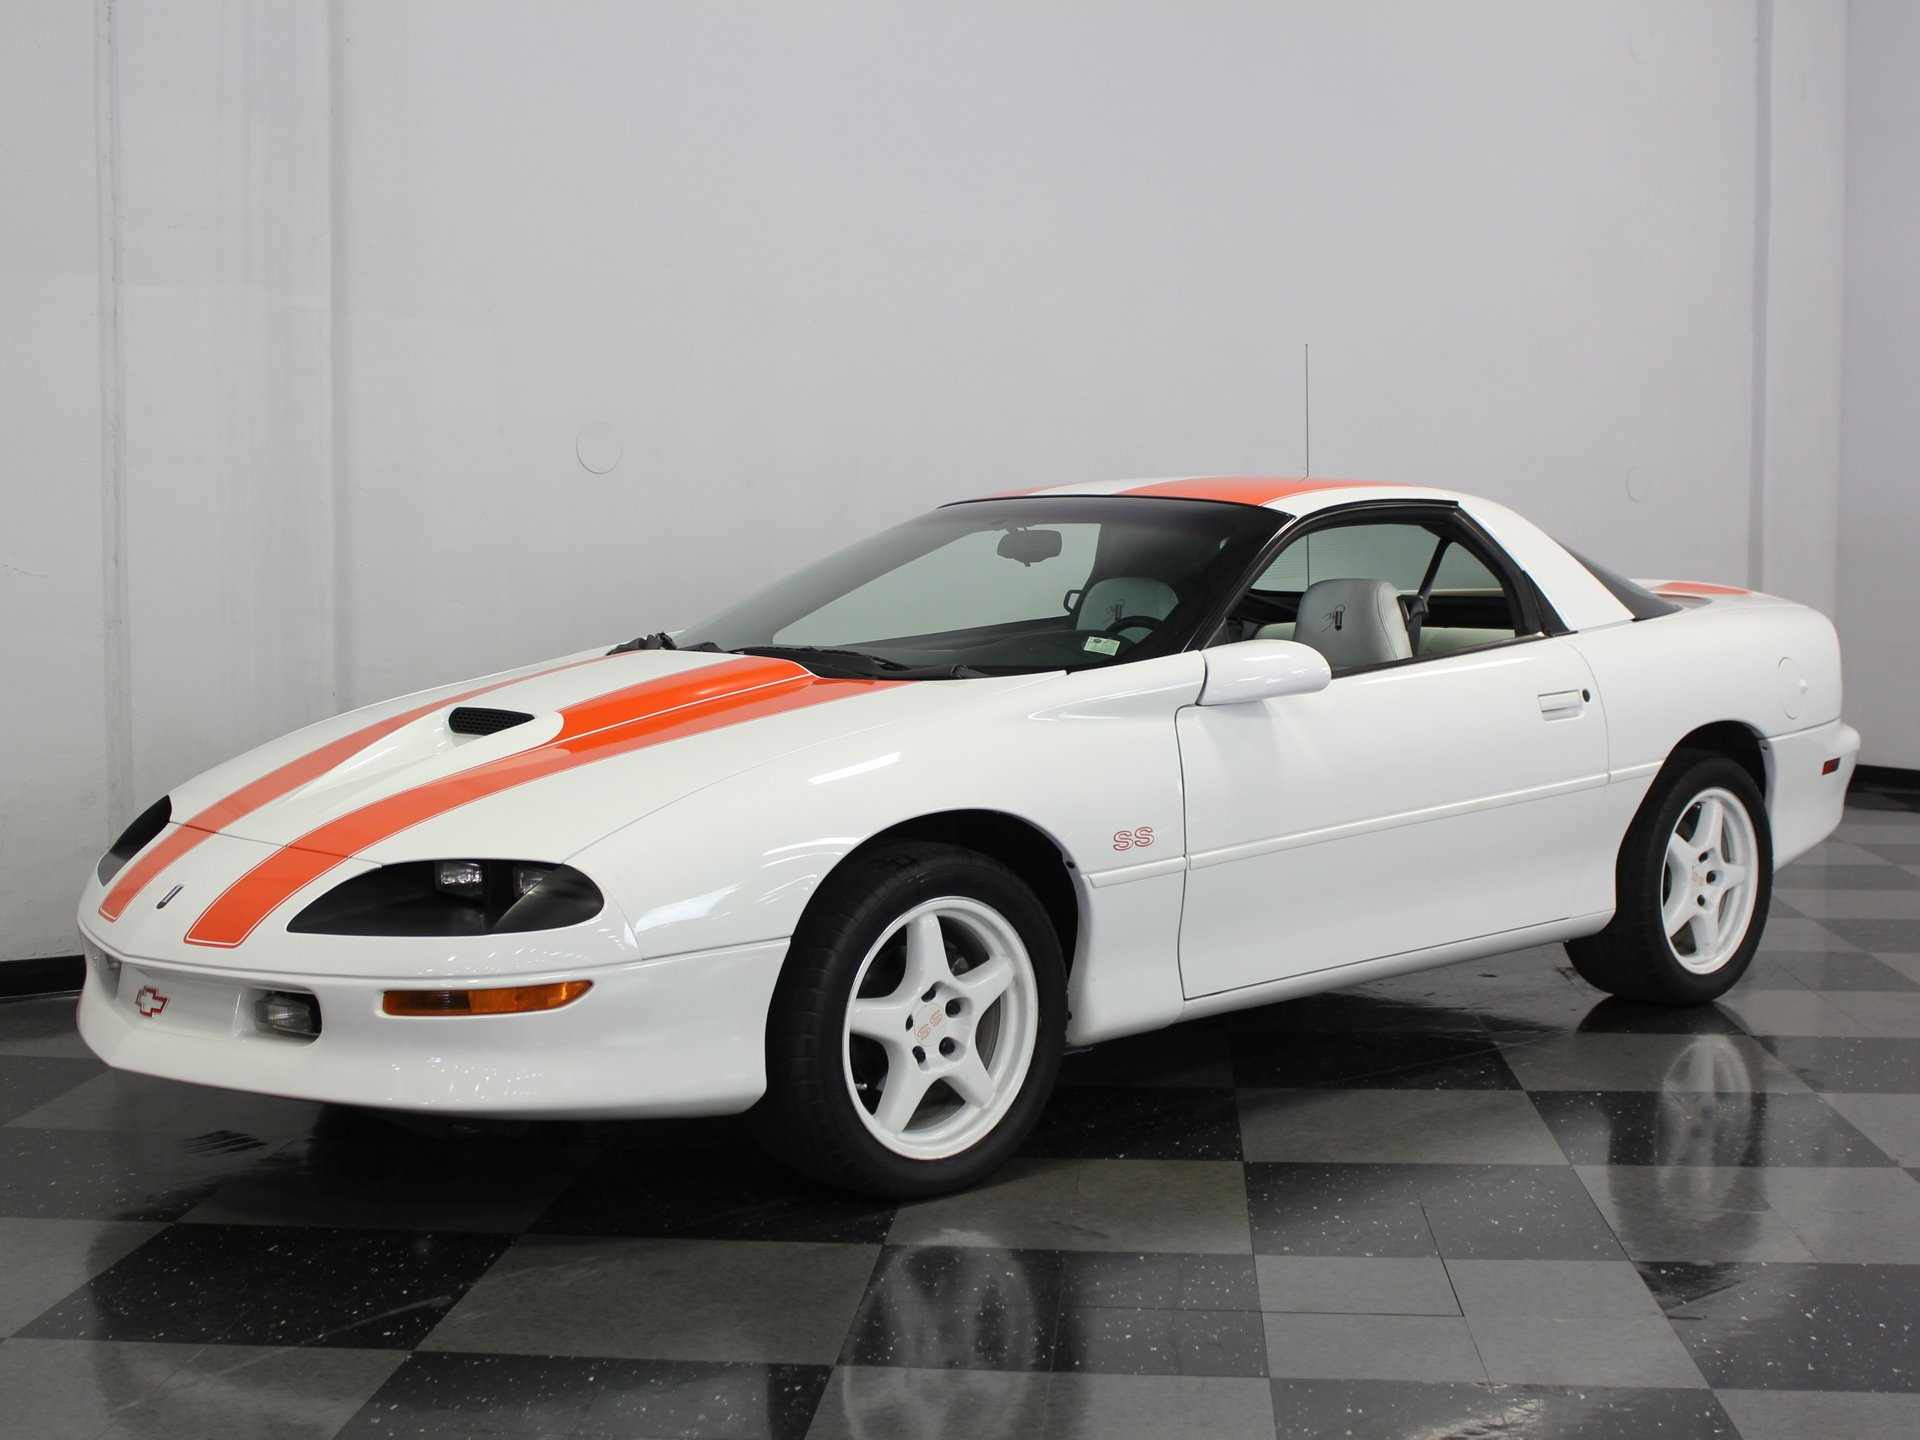 1997 chevrolet camaro ss 30th anniversary slp edition